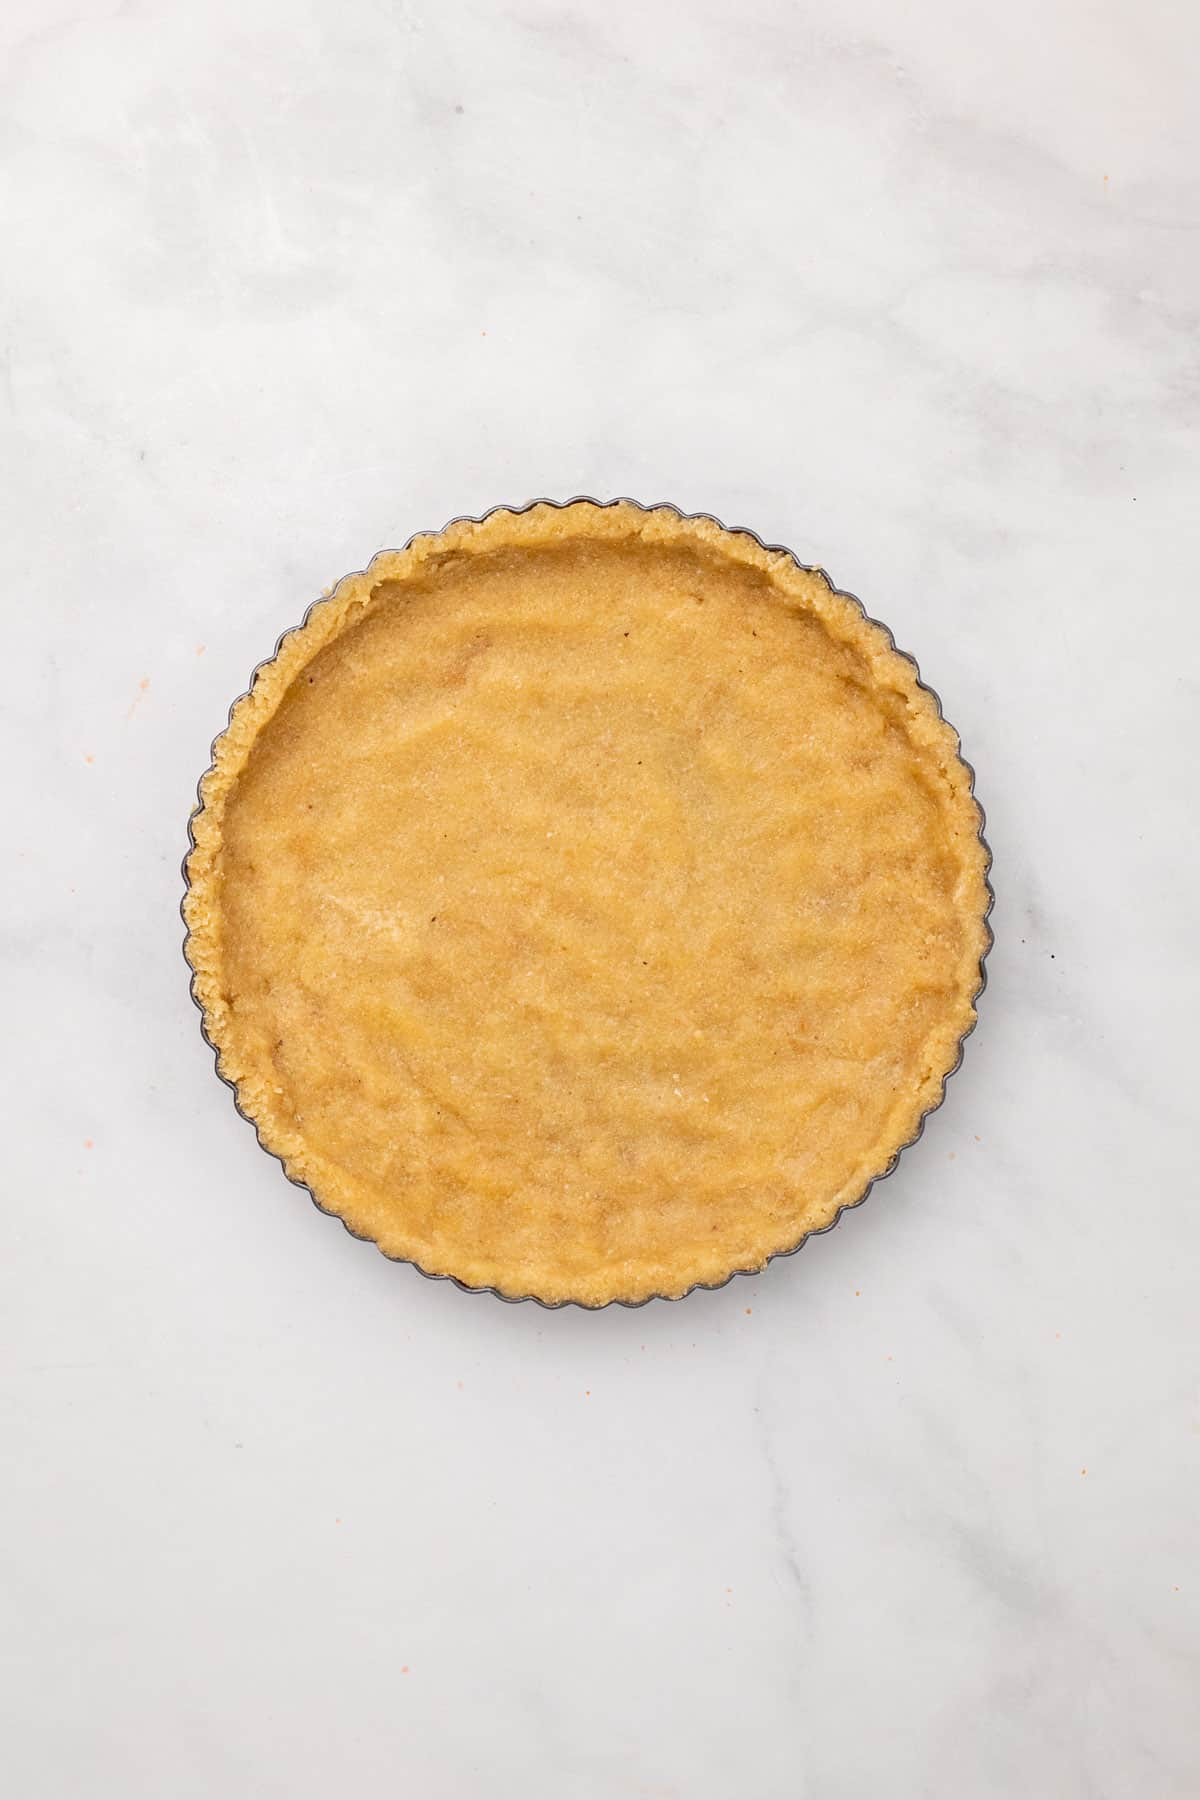 Pie crust pressed into a pie pan, as seen from above